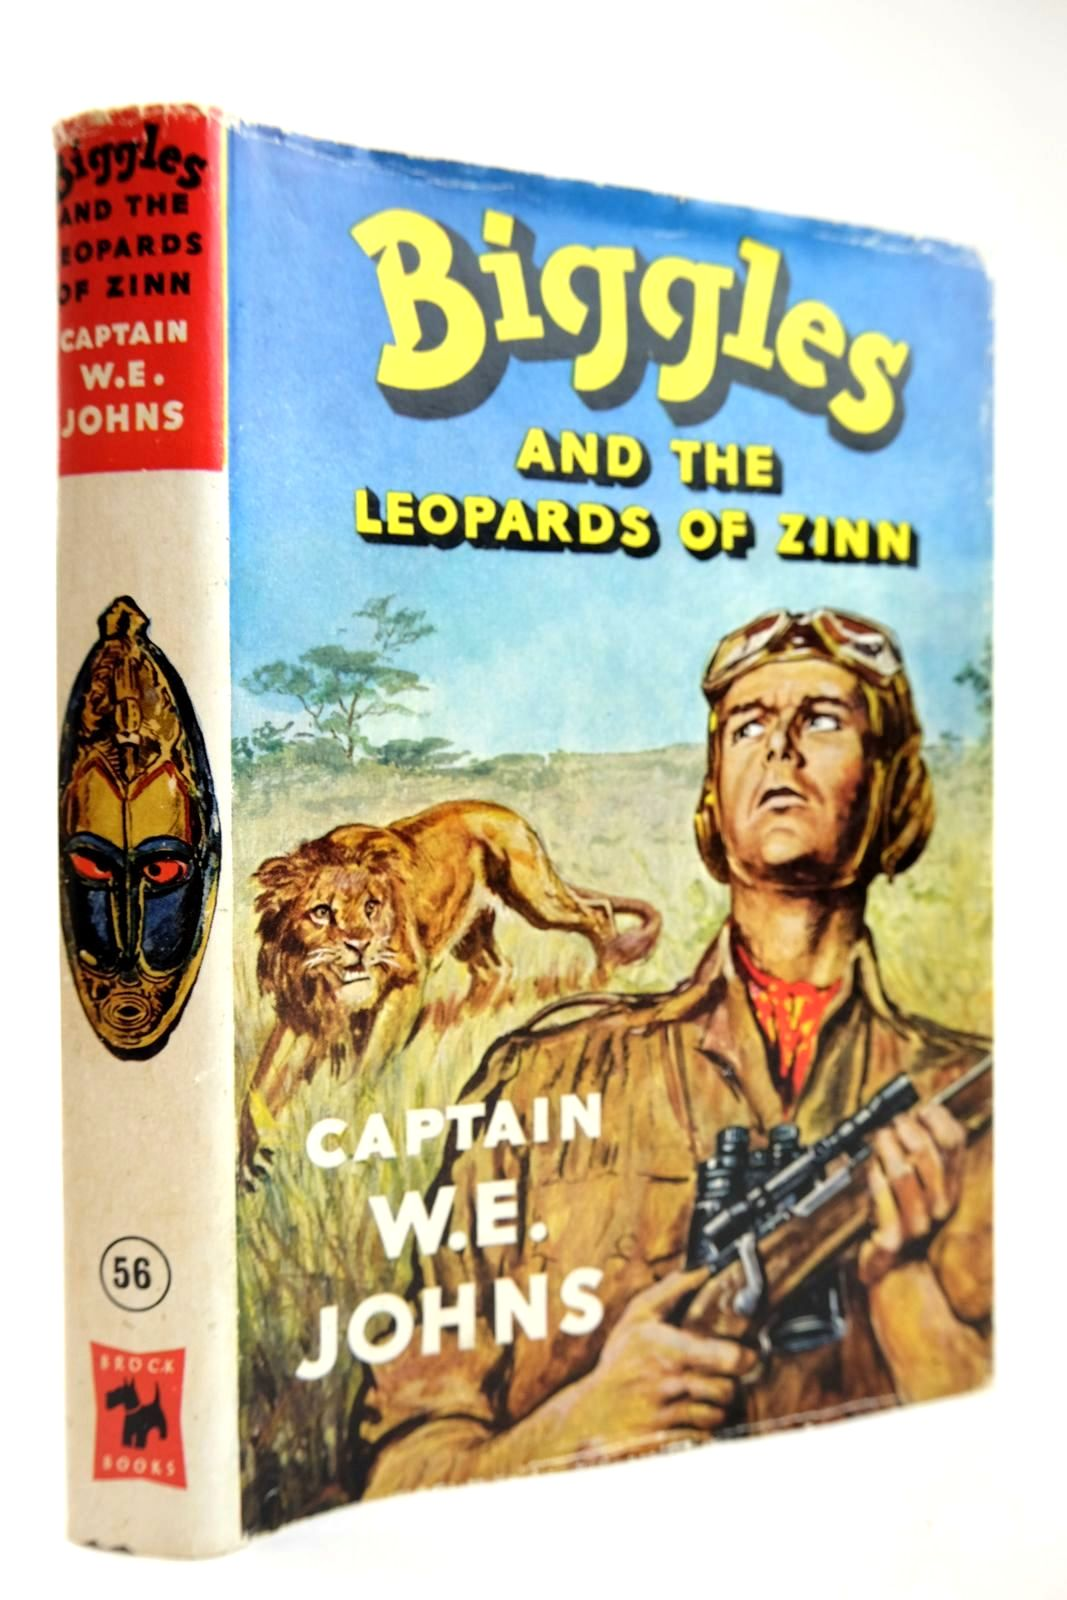 Photo of BIGGLES AND THE LEOPARDS OF ZINN written by Johns, W.E. illustrated by Stead, Leslie published by Brockhampton Press (STOCK CODE: 2132520)  for sale by Stella & Rose's Books